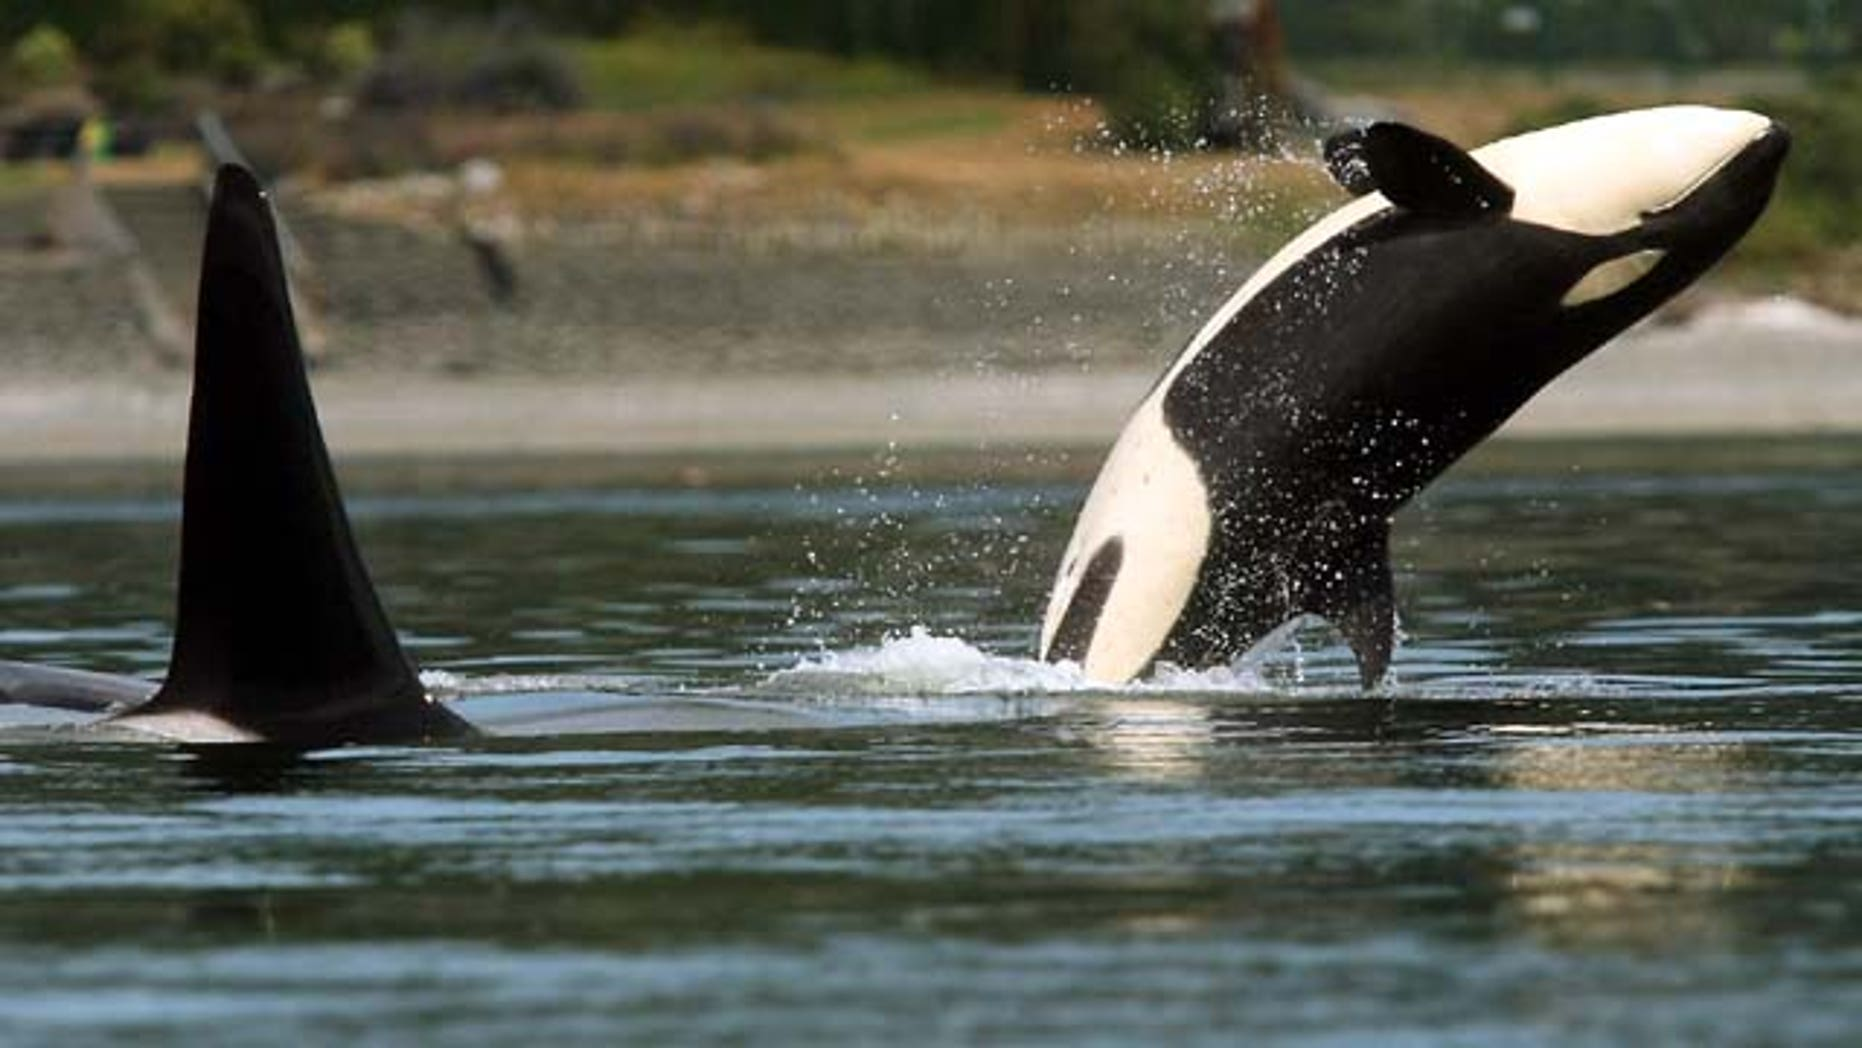 FILE - In this photo taken July 18, 2013, an orca whale breaches as the pod swims through Liberty Bay in Poulsbo, Wash. (AP Photo)